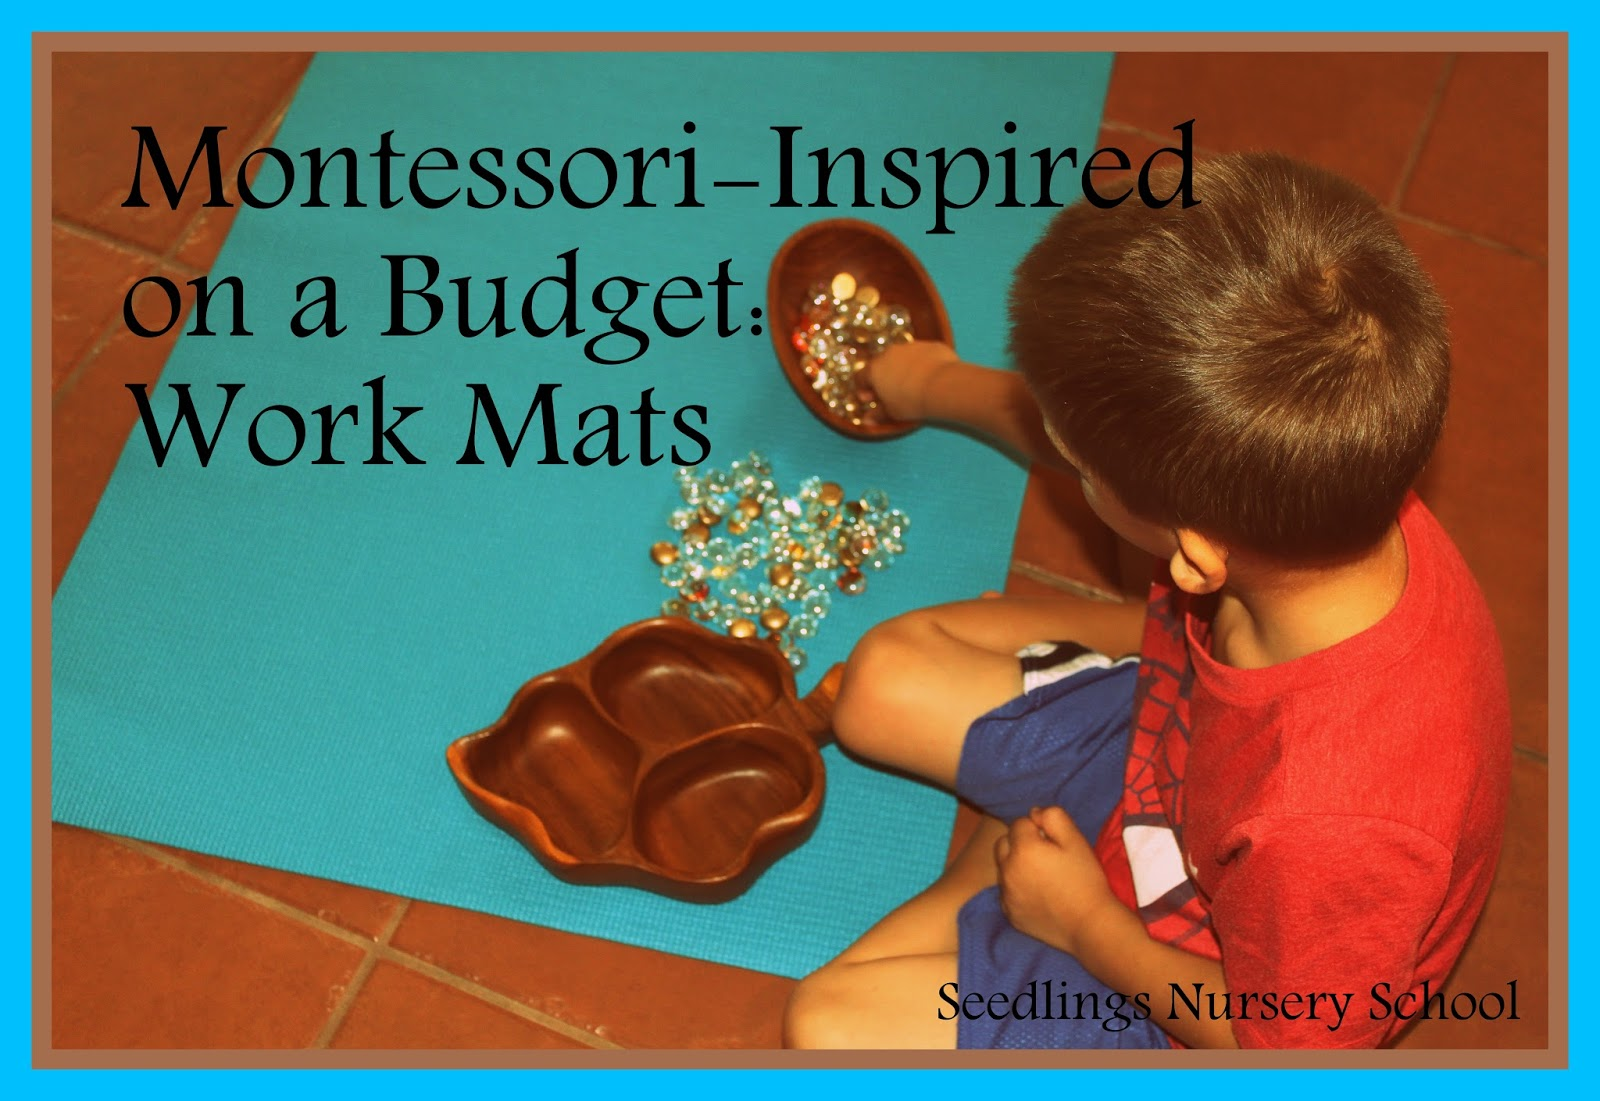 miss lindsey s playschool montessori inspired on a budget work mats as you know seedlings is a mash up of my favorite educational philosophies waldorf montessori and reggio waldessorio if you will